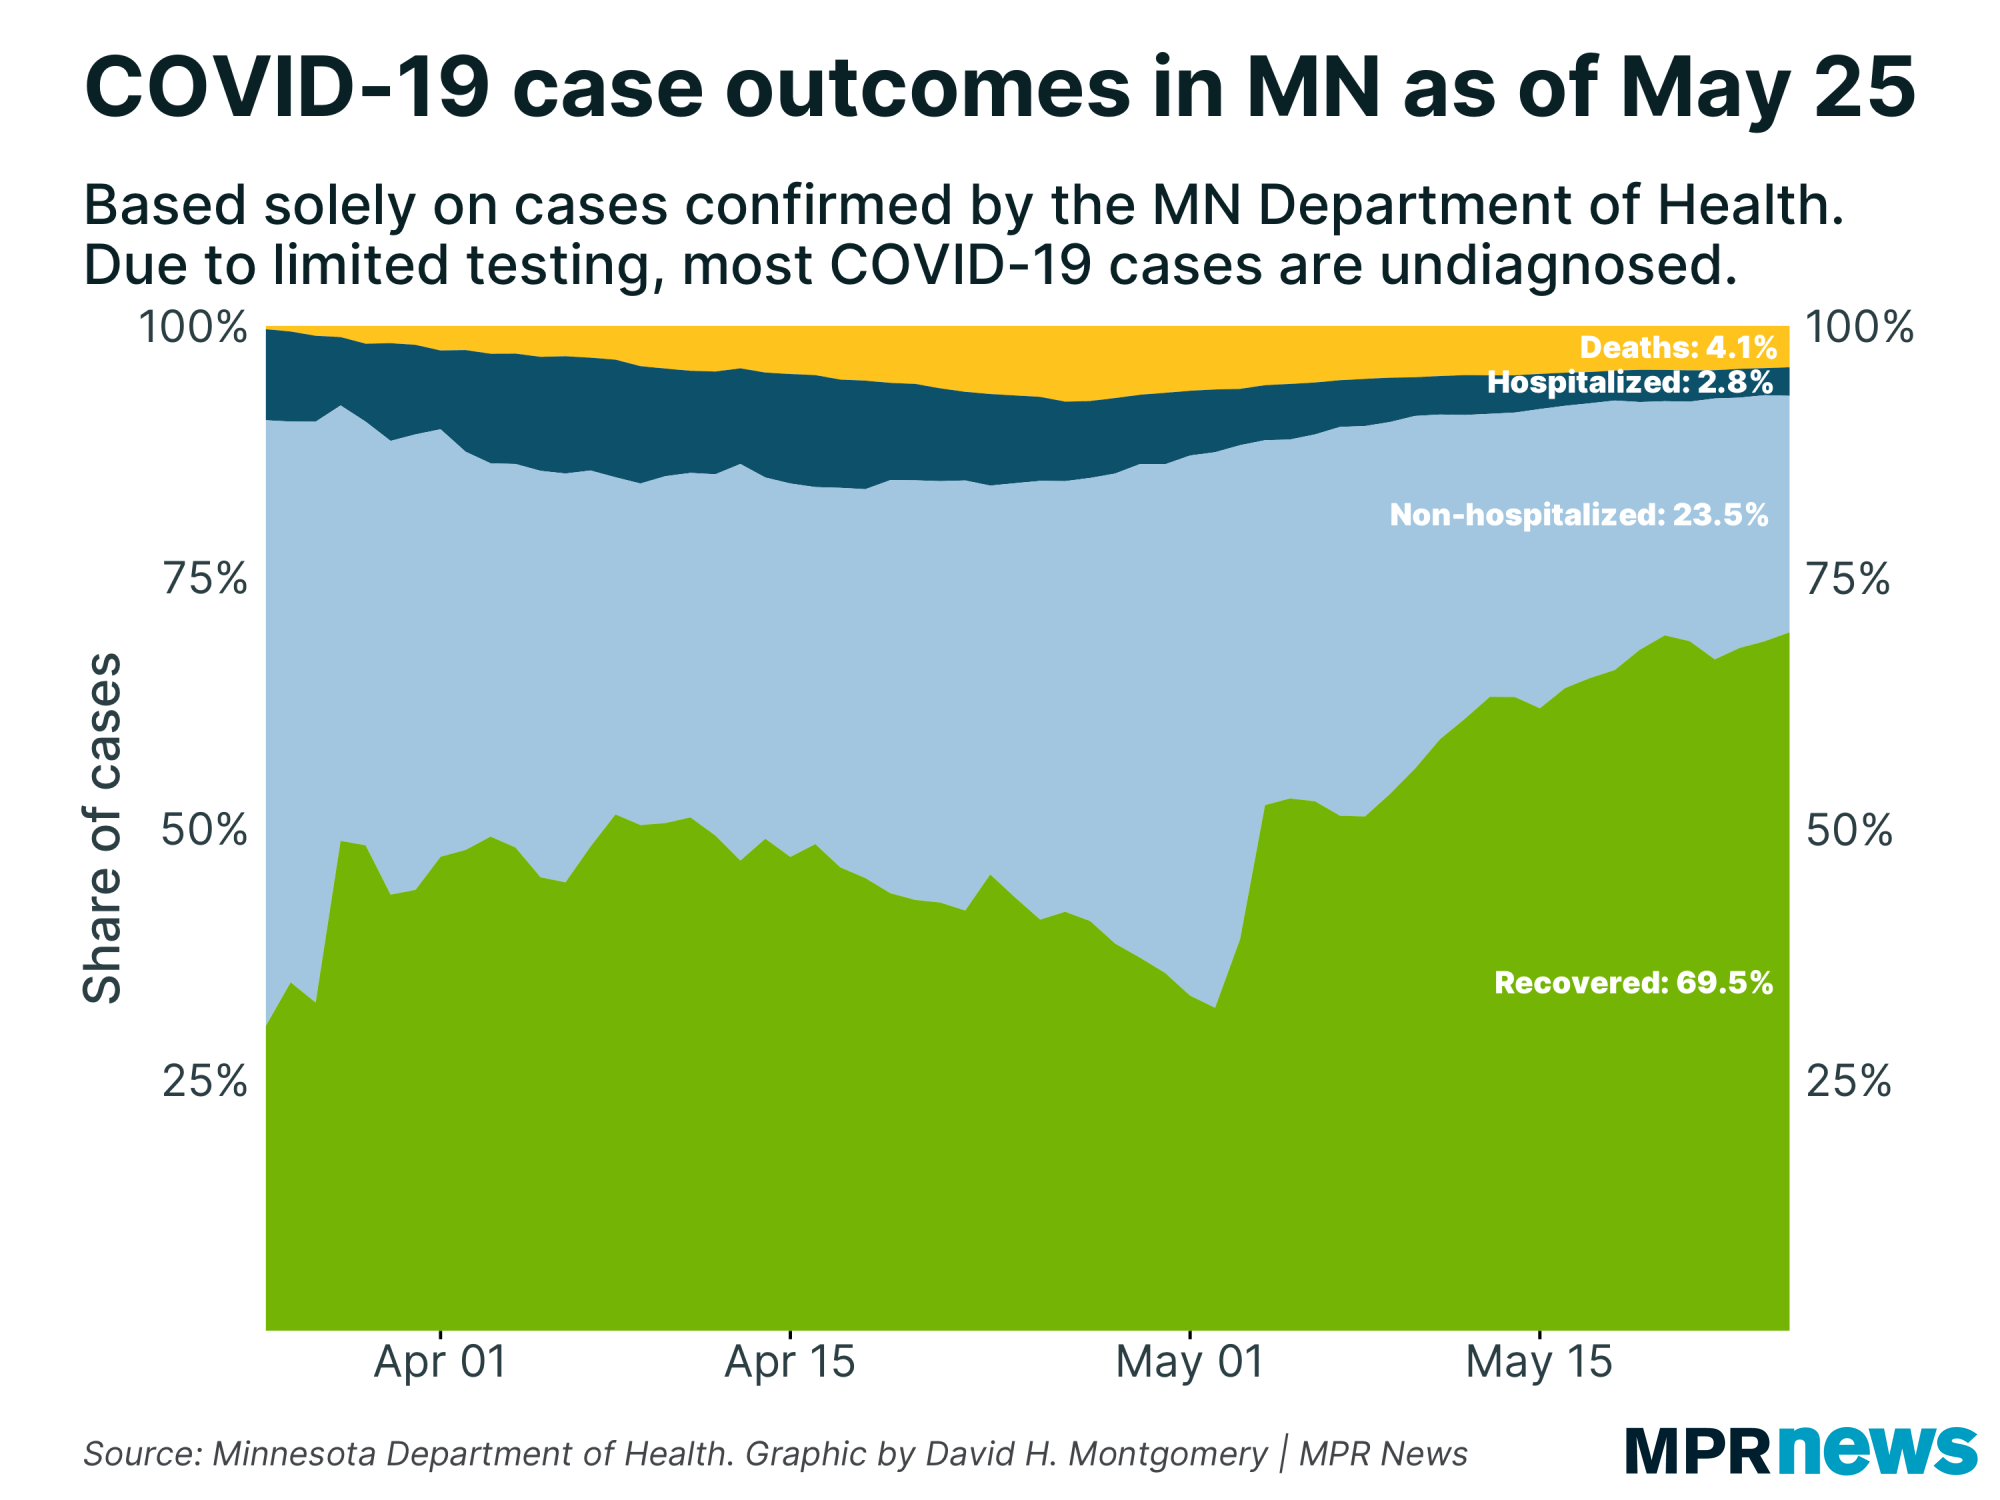 COVID-19 case outcomes in MN as of May 25